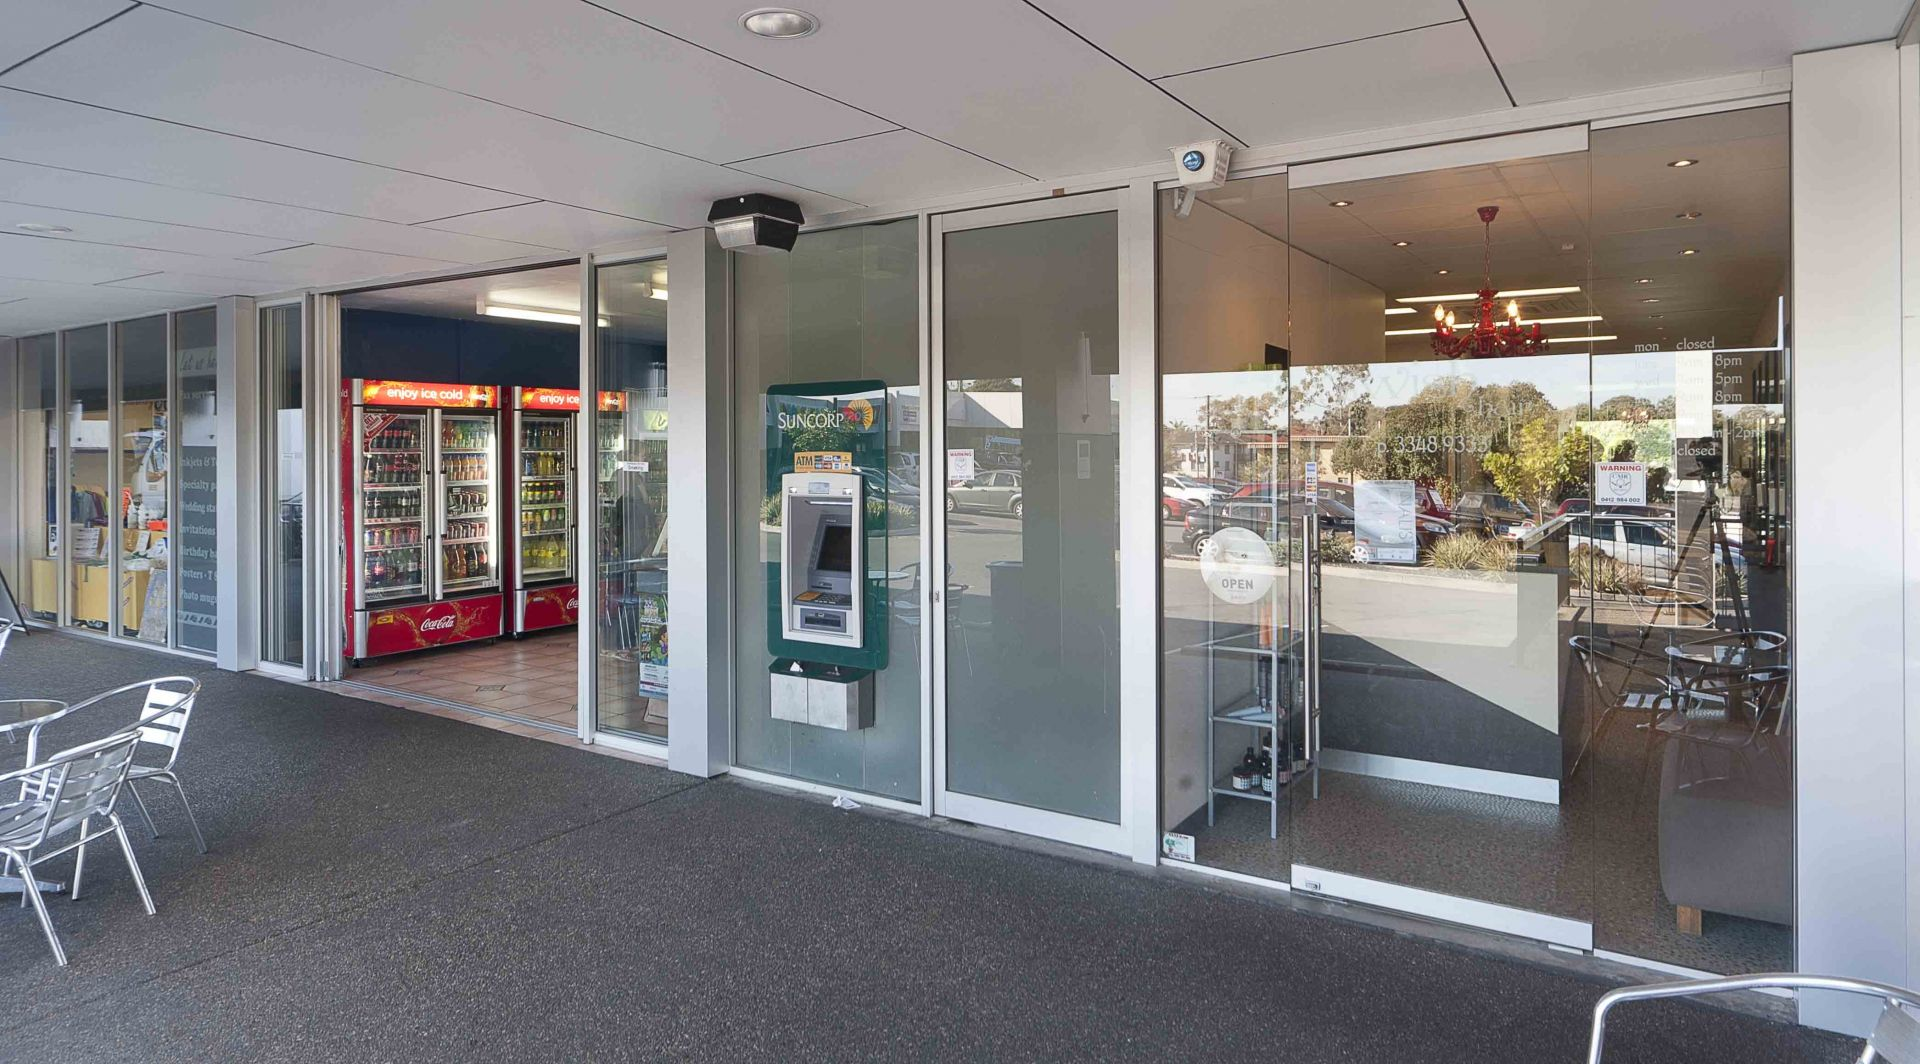 For Lease: 43sqm* Retail space in Twin Parks Shopping Centre!